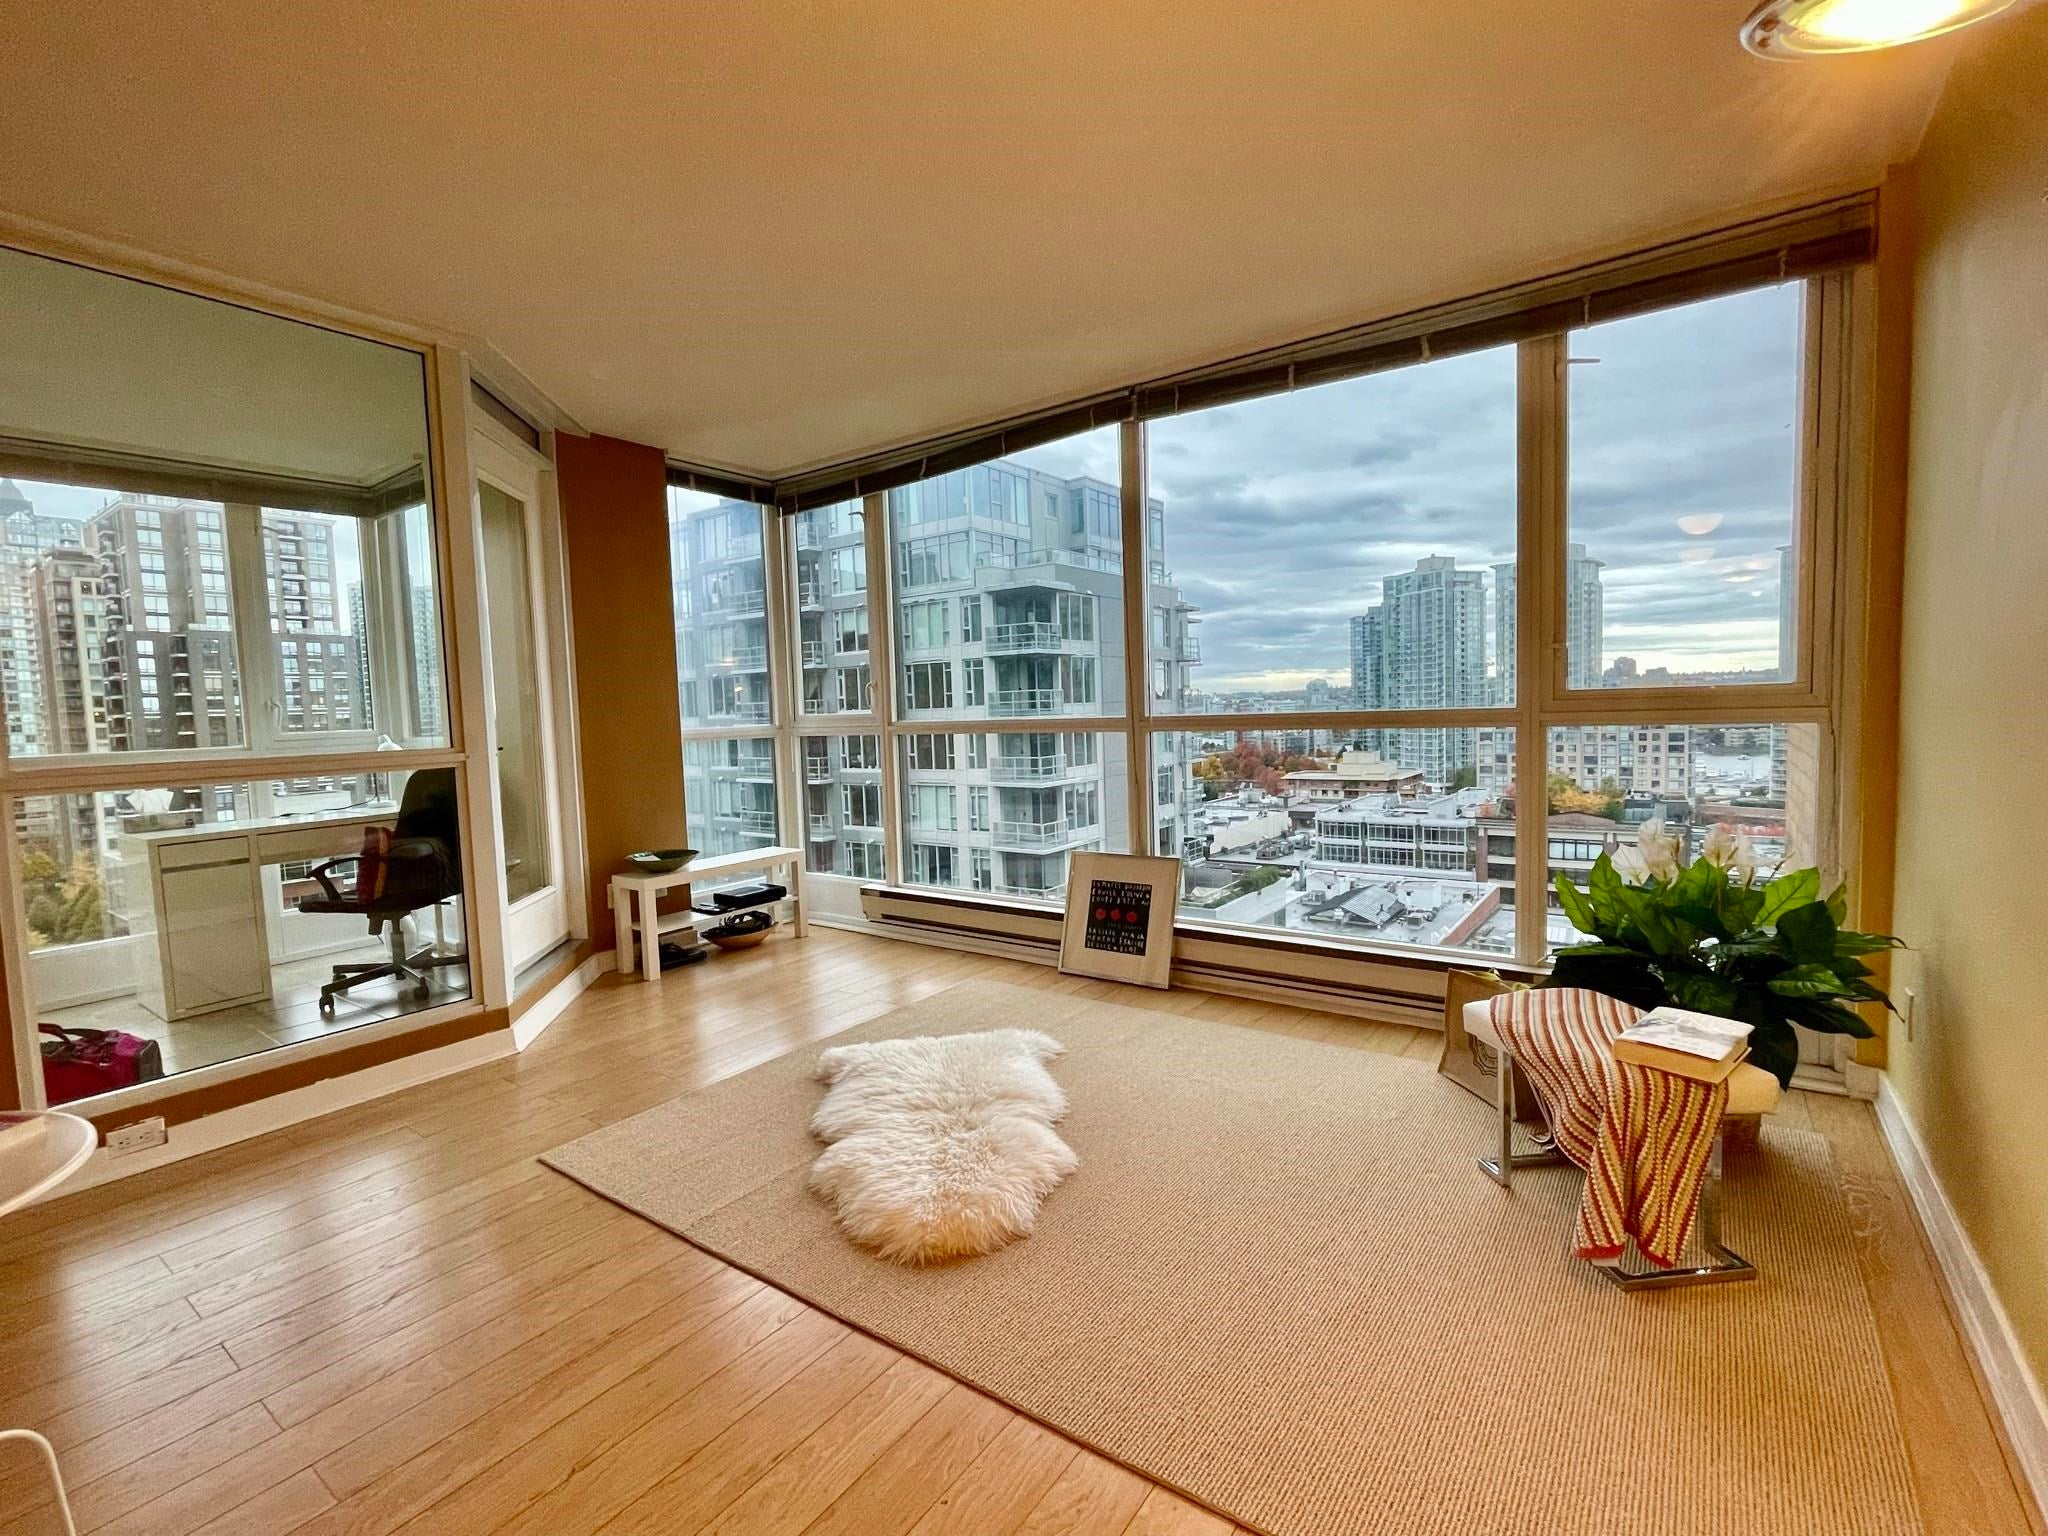 1105 1188 RICHARDS STREET - Yaletown Apartment/Condo for sale, 1 Bedroom (R2619671) - #1